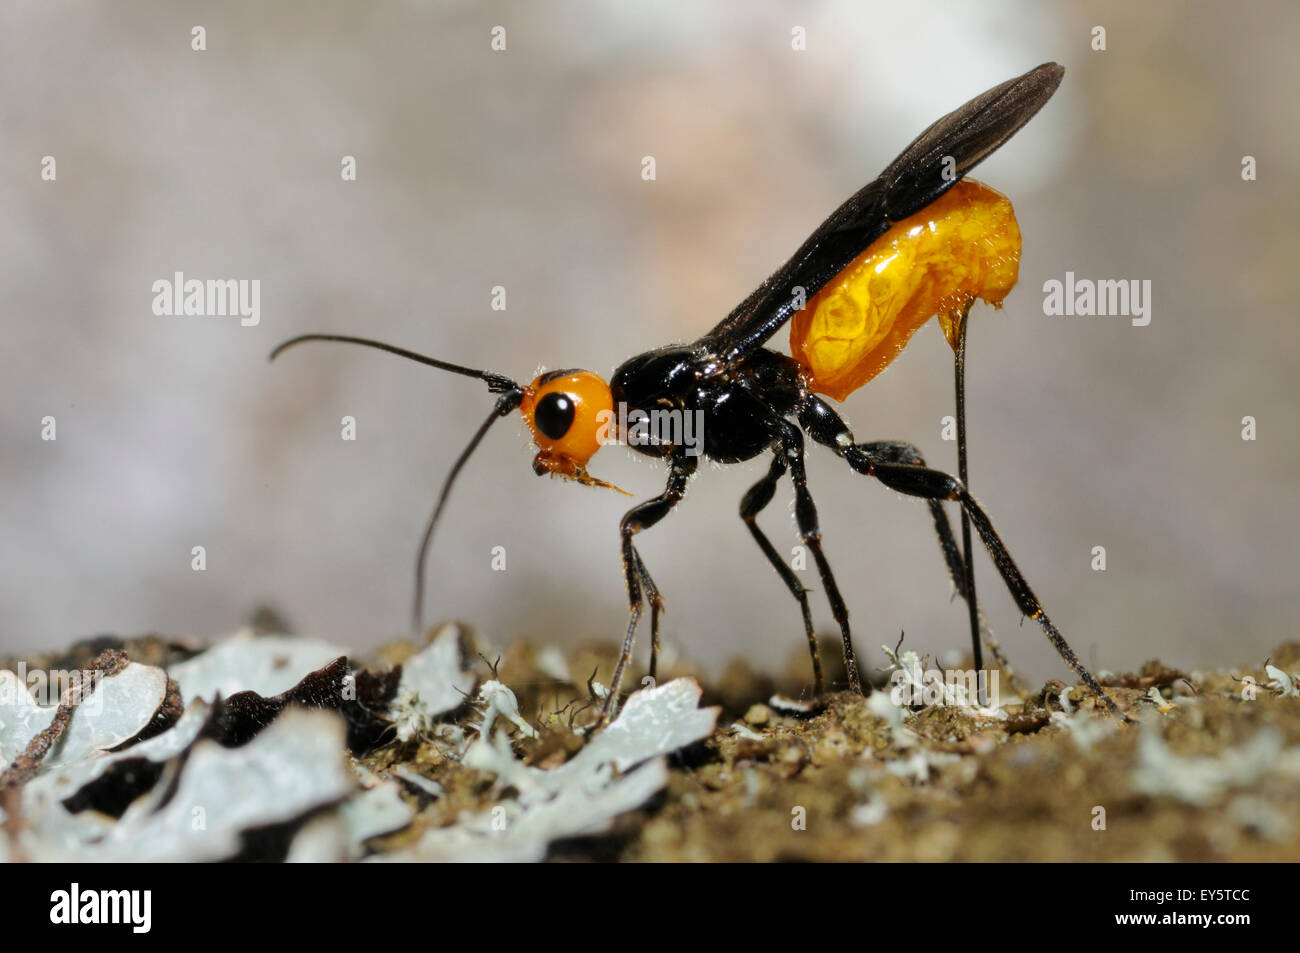 Parasitoid wasp laying - Northern Vosges France - Stock Image